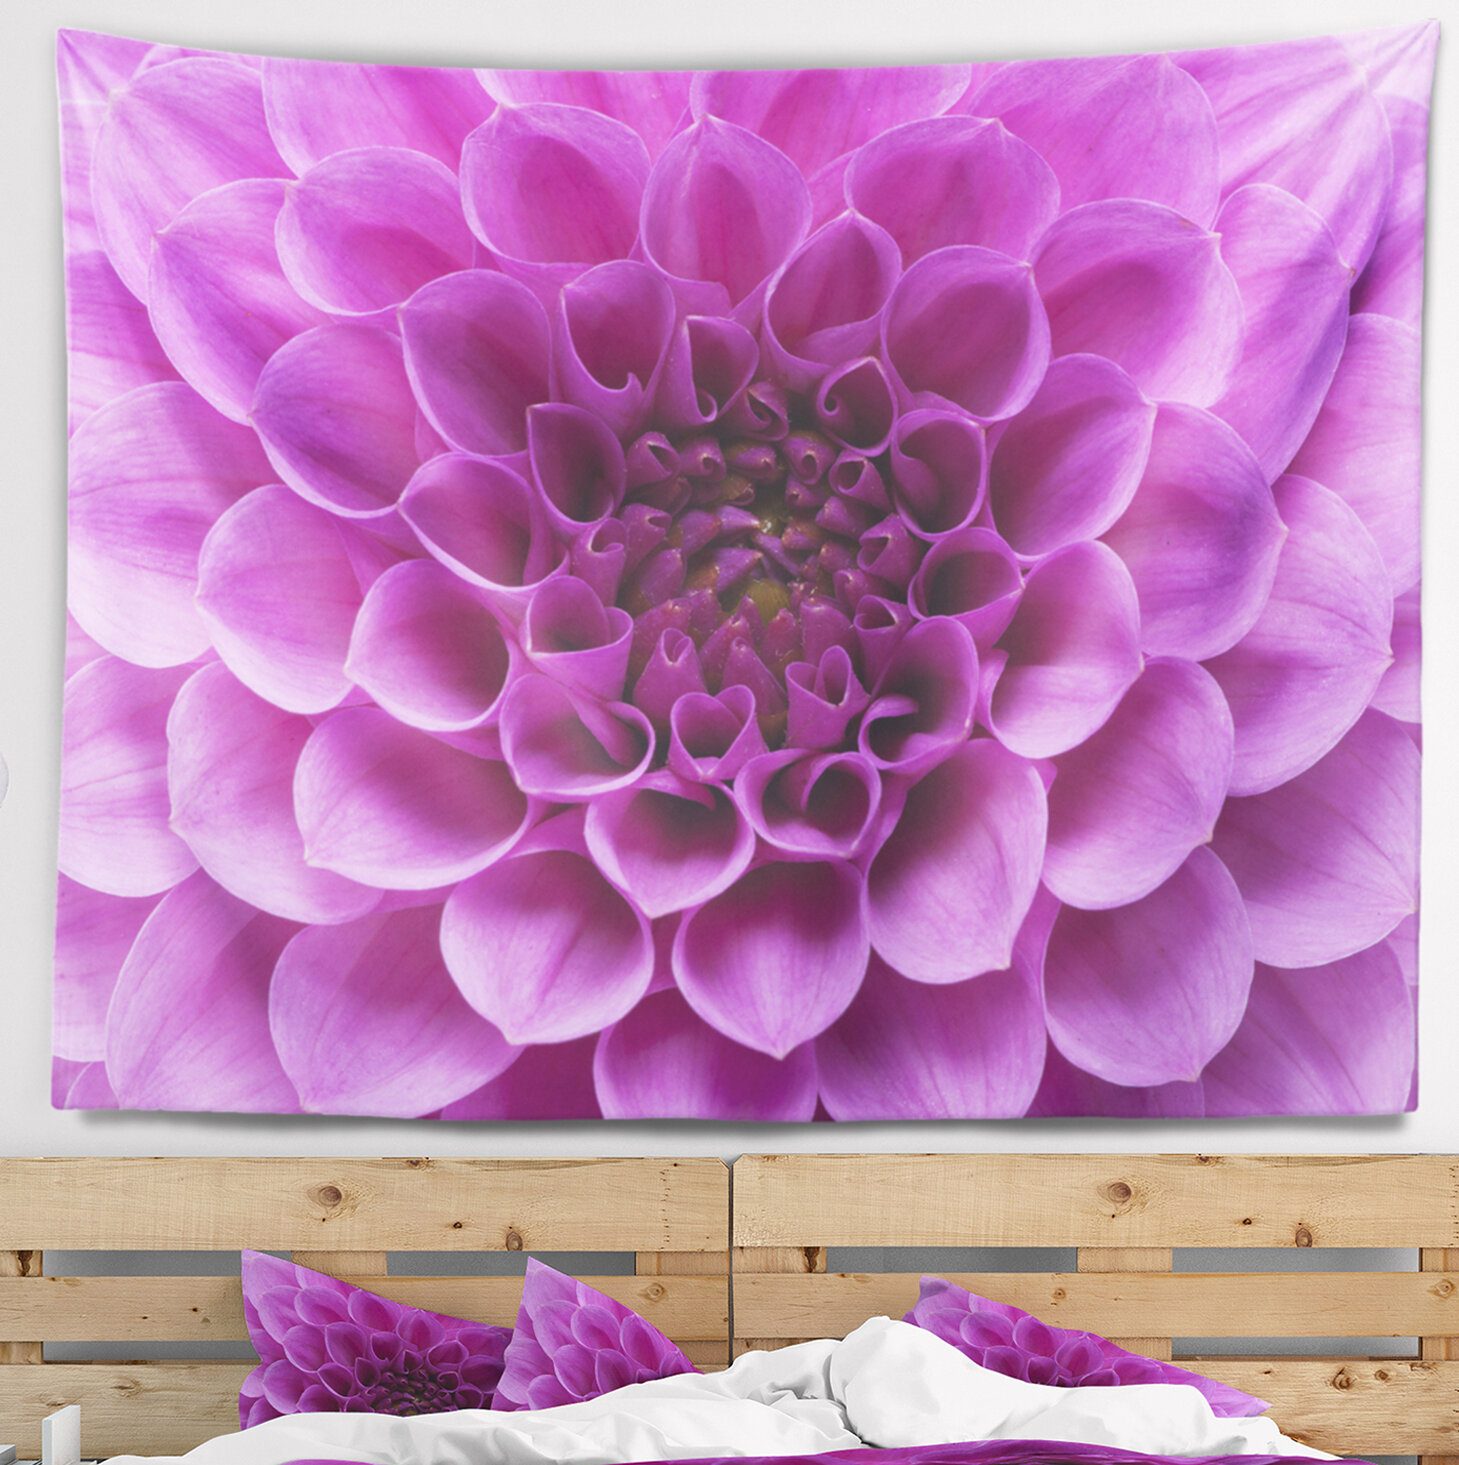 East Urban Home Floral Large Light Purple Flower And Petals Tapestry